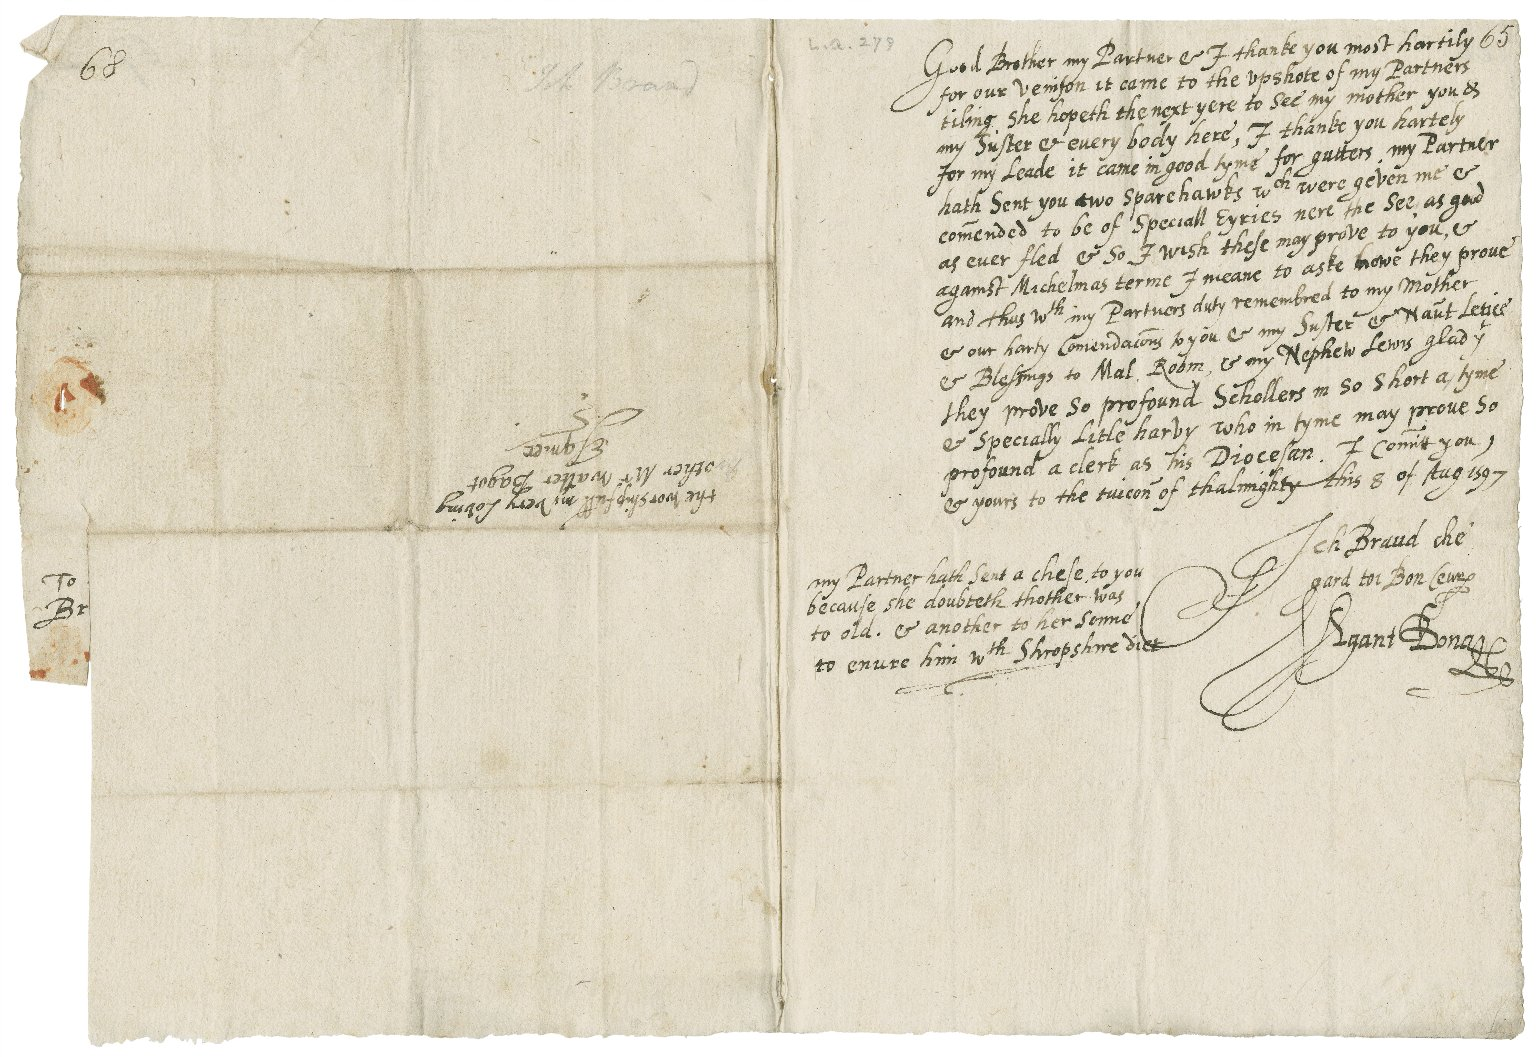 Letter from Richard Broughton (Richard Bagot's son-in-law) and Anne Broughton to Walter Bagot, 1597 August 8